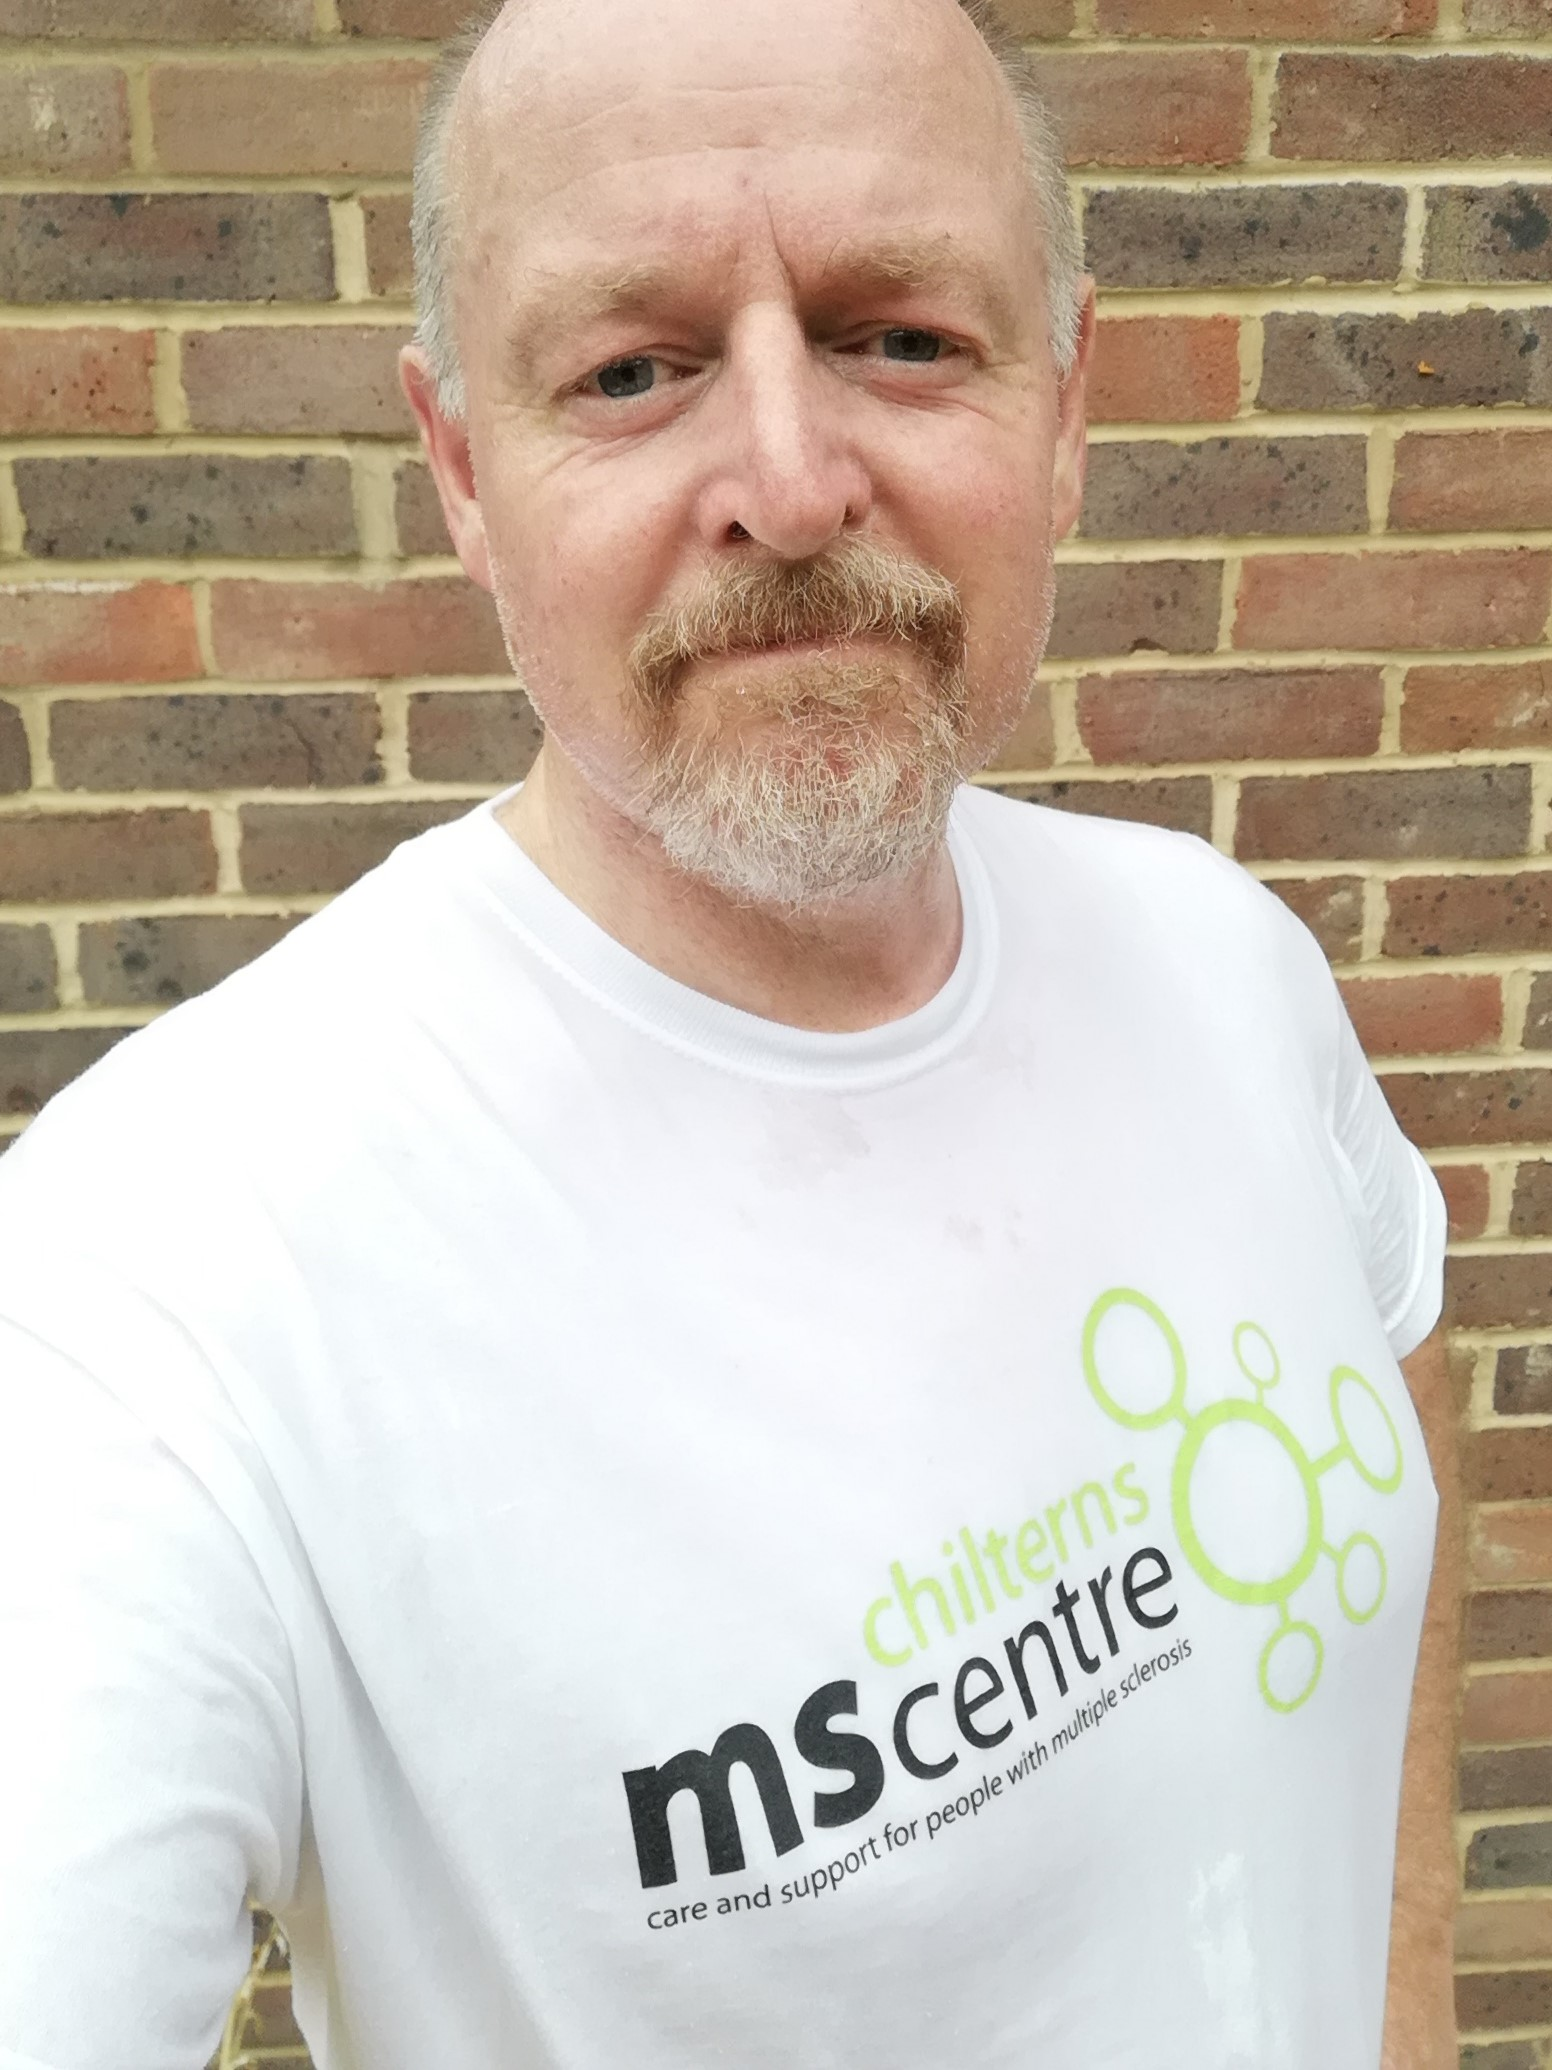 man wearing a chilterns ms centre tshirt